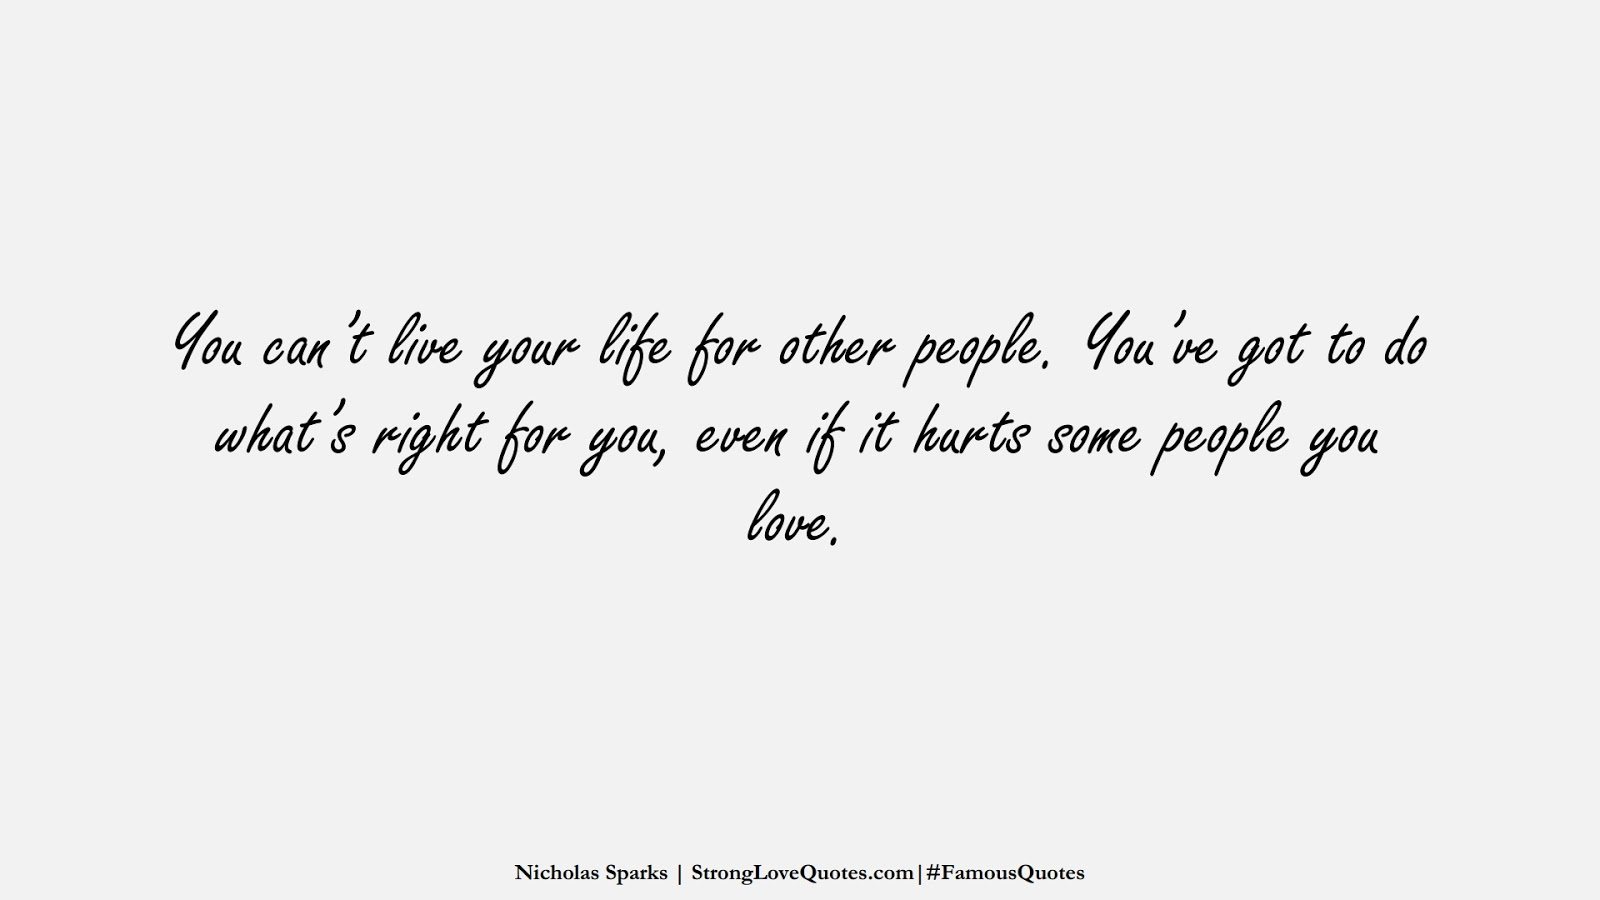 You can't live your life for other people. You've got to do what's right for you, even if it hurts some people you love. (Nicholas Sparks);  #FamousQuotes